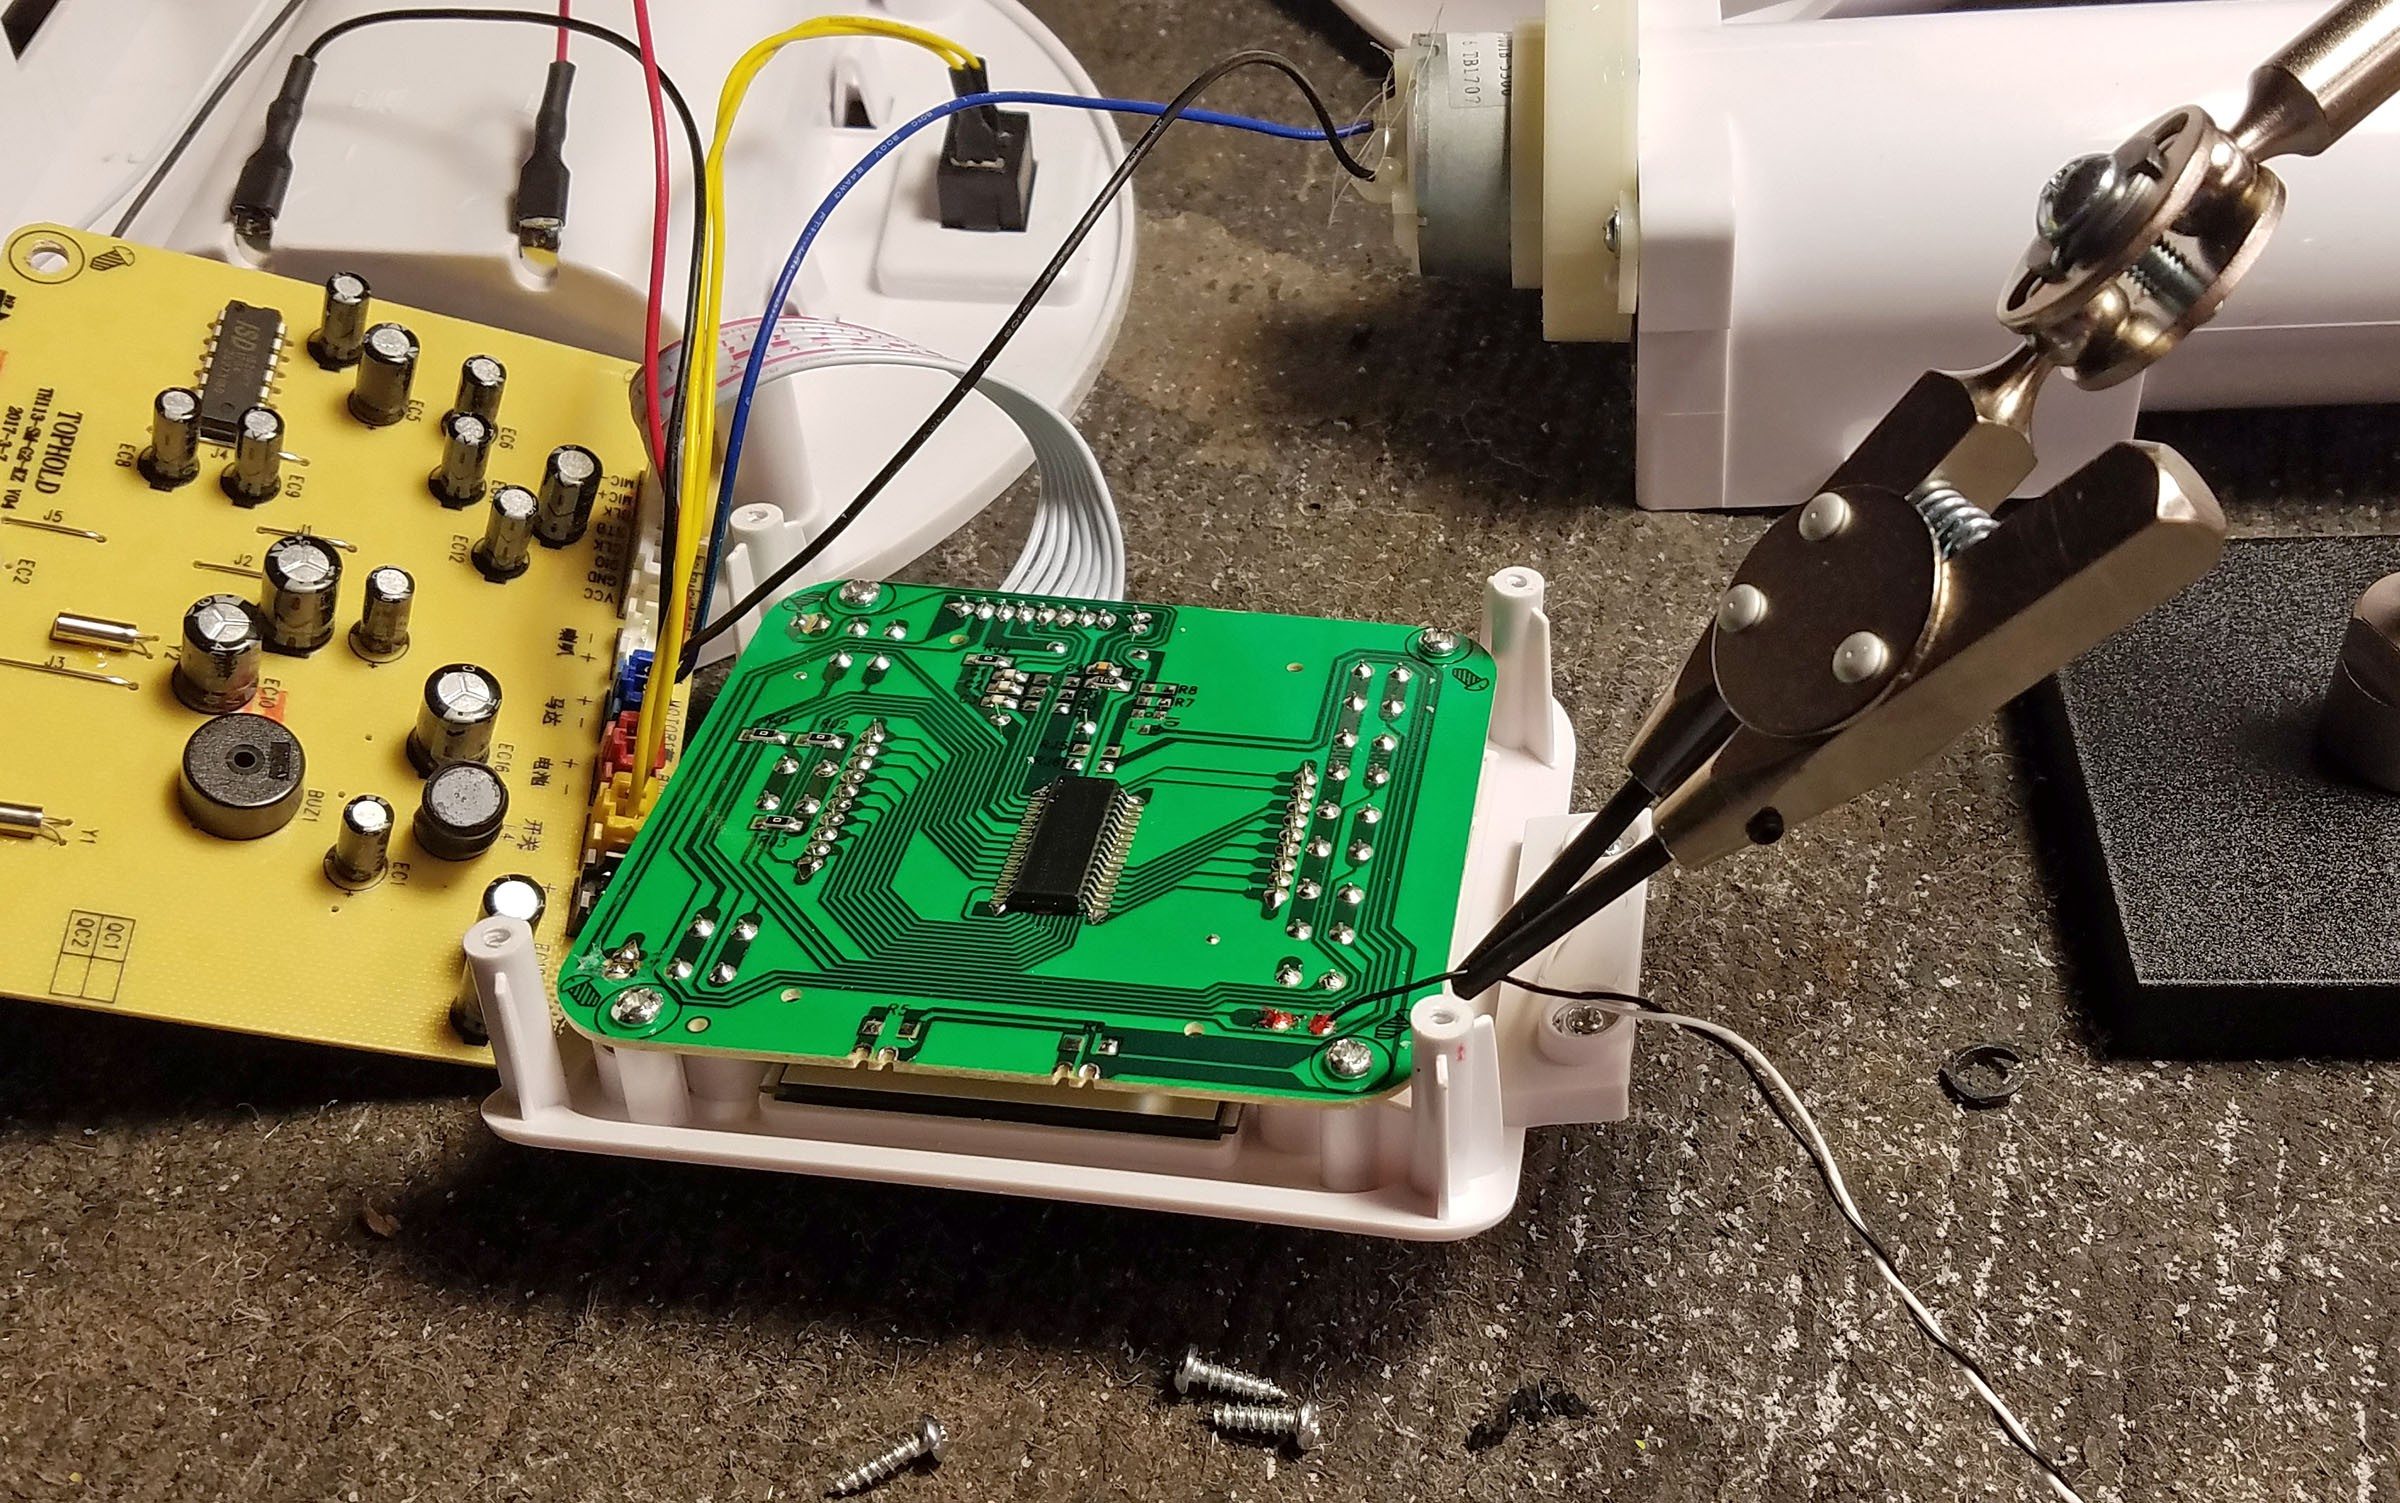 Instructions Magic Flute Of Rat Mind Control W Raspberry Pi Pcb Cutting Machine Sewing Modification Electronics Projects The Green Logic Runs At 15v All I Am Really Interested When It Comes To These Pcbs Is Motor There A Manual Override Button Which Turn